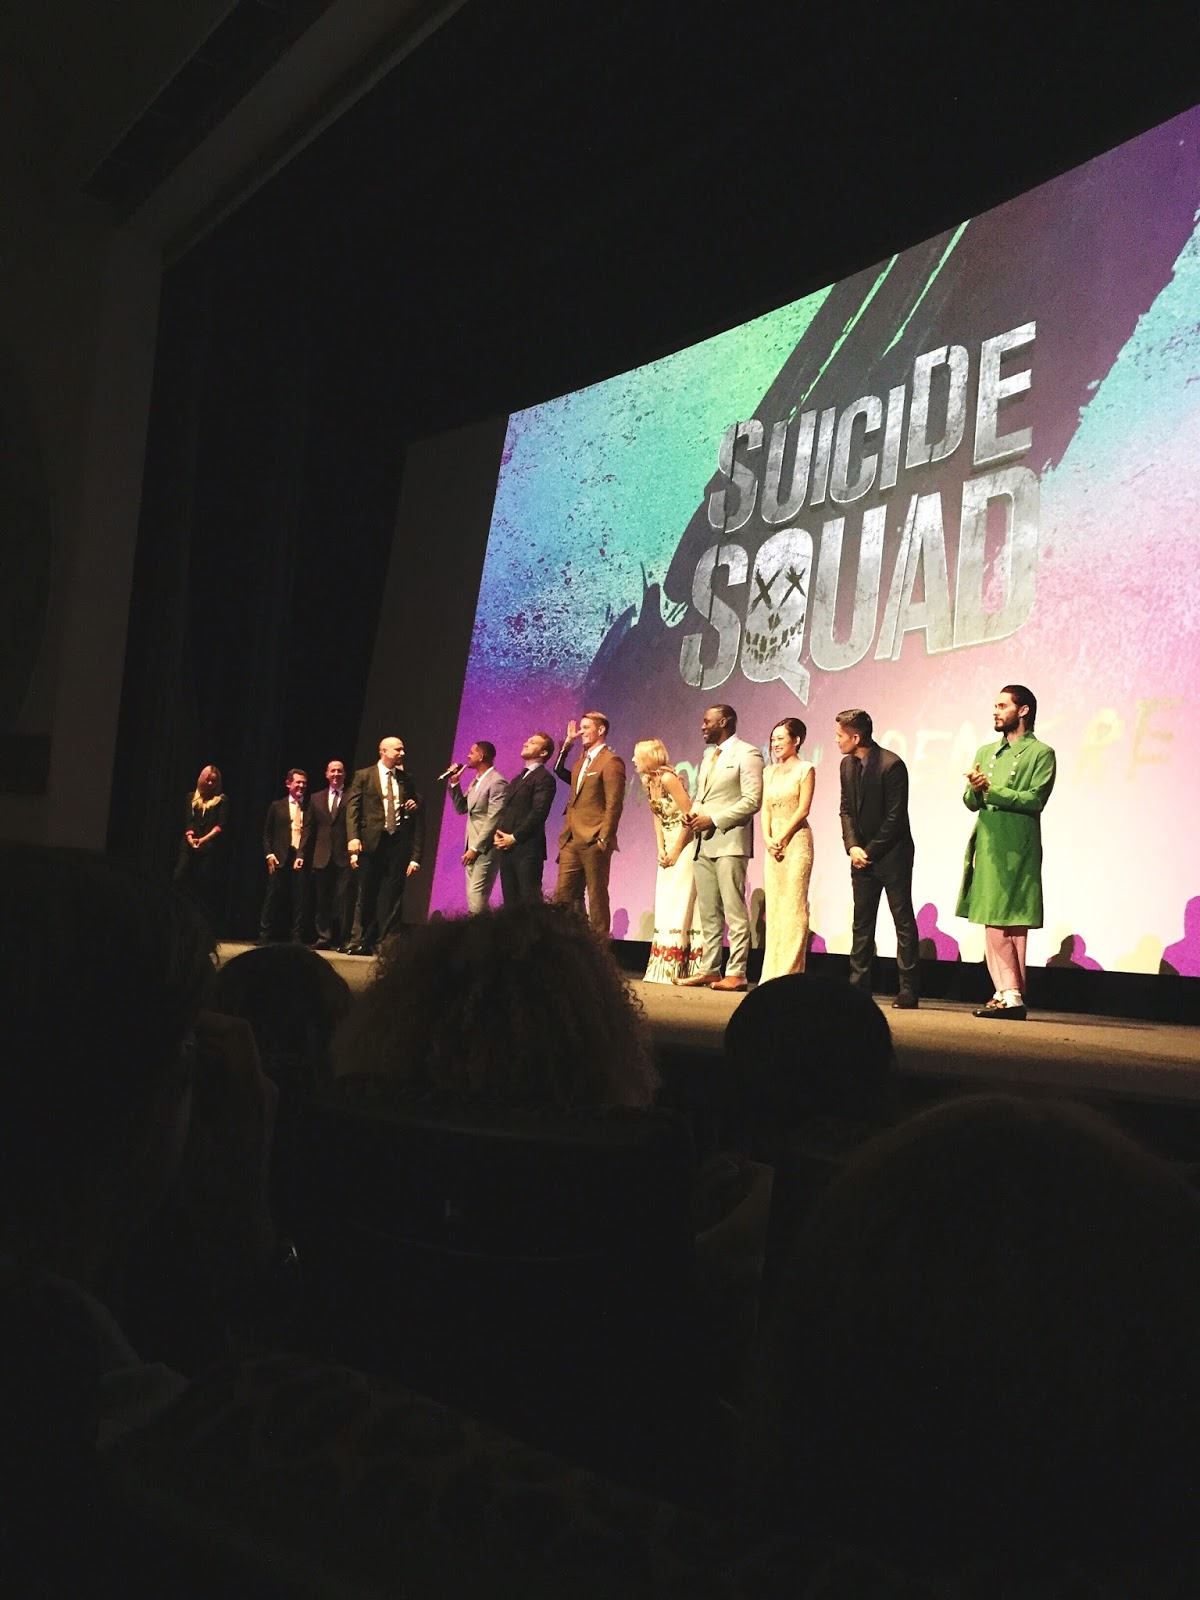 See The Stars - Sunday Summary Suicide Squad